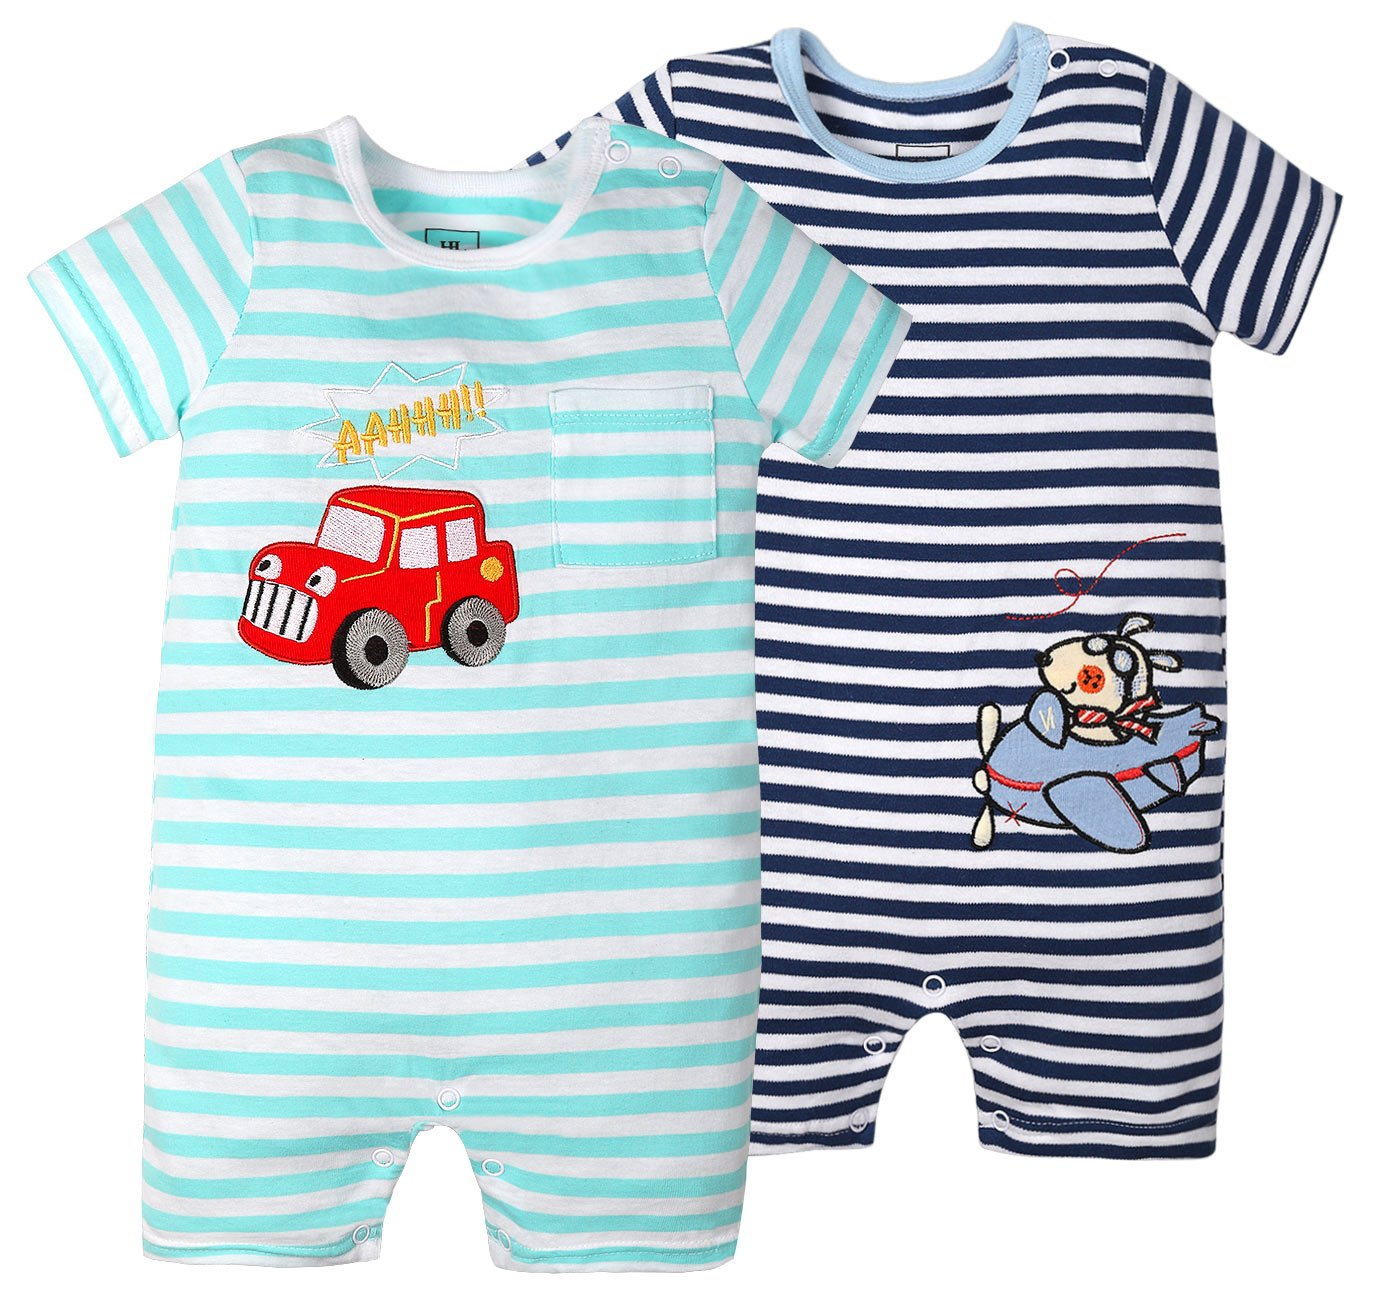 Baby Boys'2 Pack Jumpsuit Yarn-Dyed Striped Baby Onesies Set Summer (Short Jumpsuit(Plan+car), 18-24 Months)